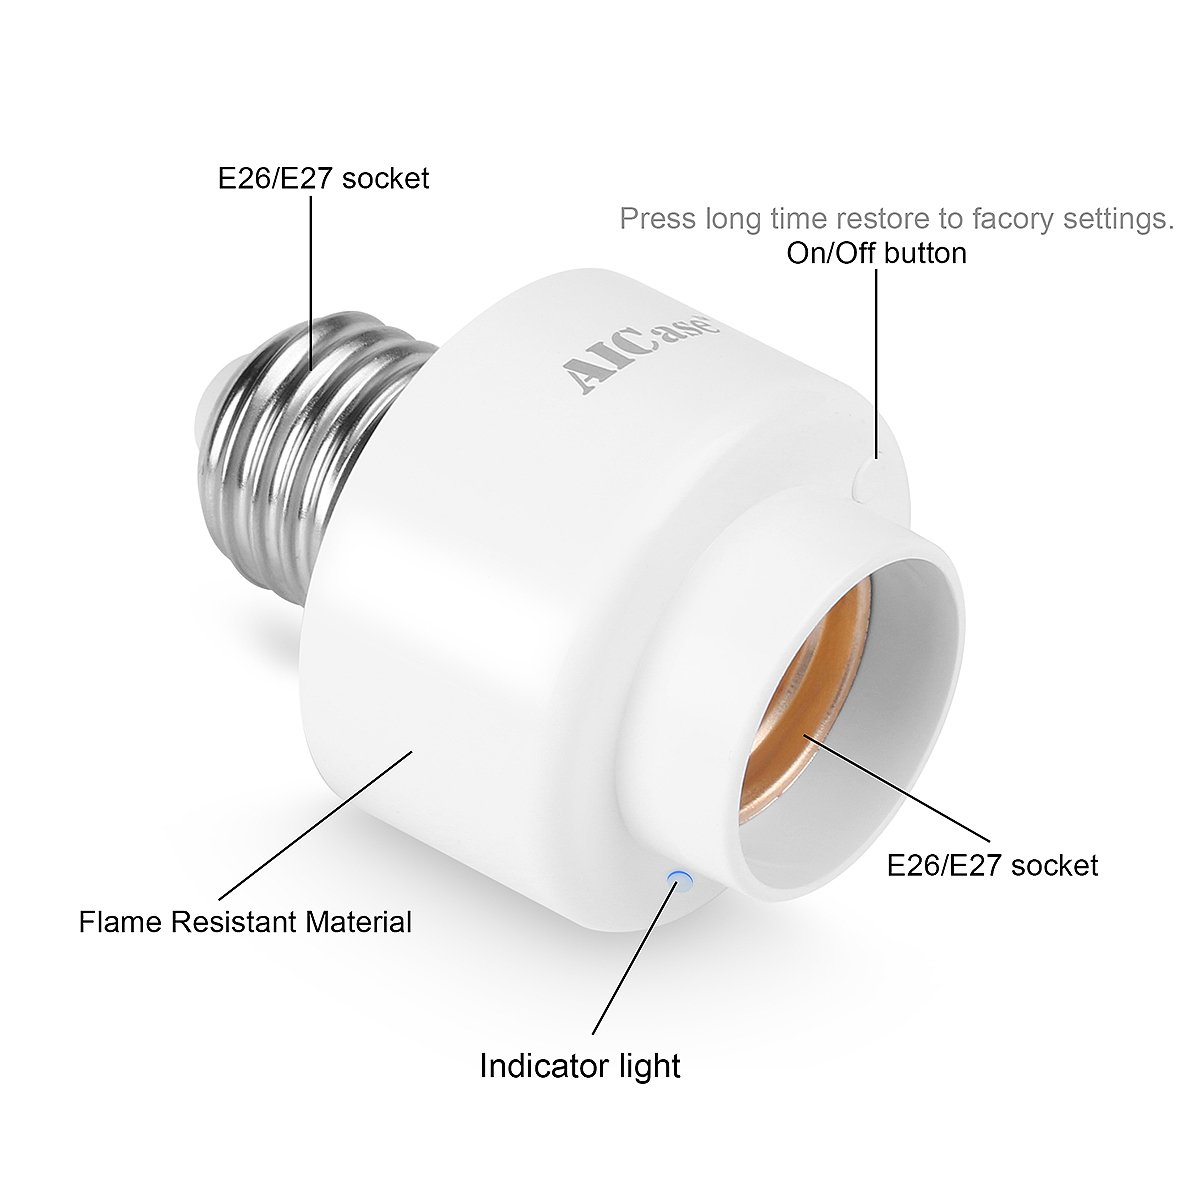 Smart Wifi E27 E26 Light Socket Aicase 2 Packintelligent Wlan Bulb To Ac Wall Outlet Plug Adapter On Off Switch 12 Home Remote Control Lamp Holder Compatible With Alexa And Google White